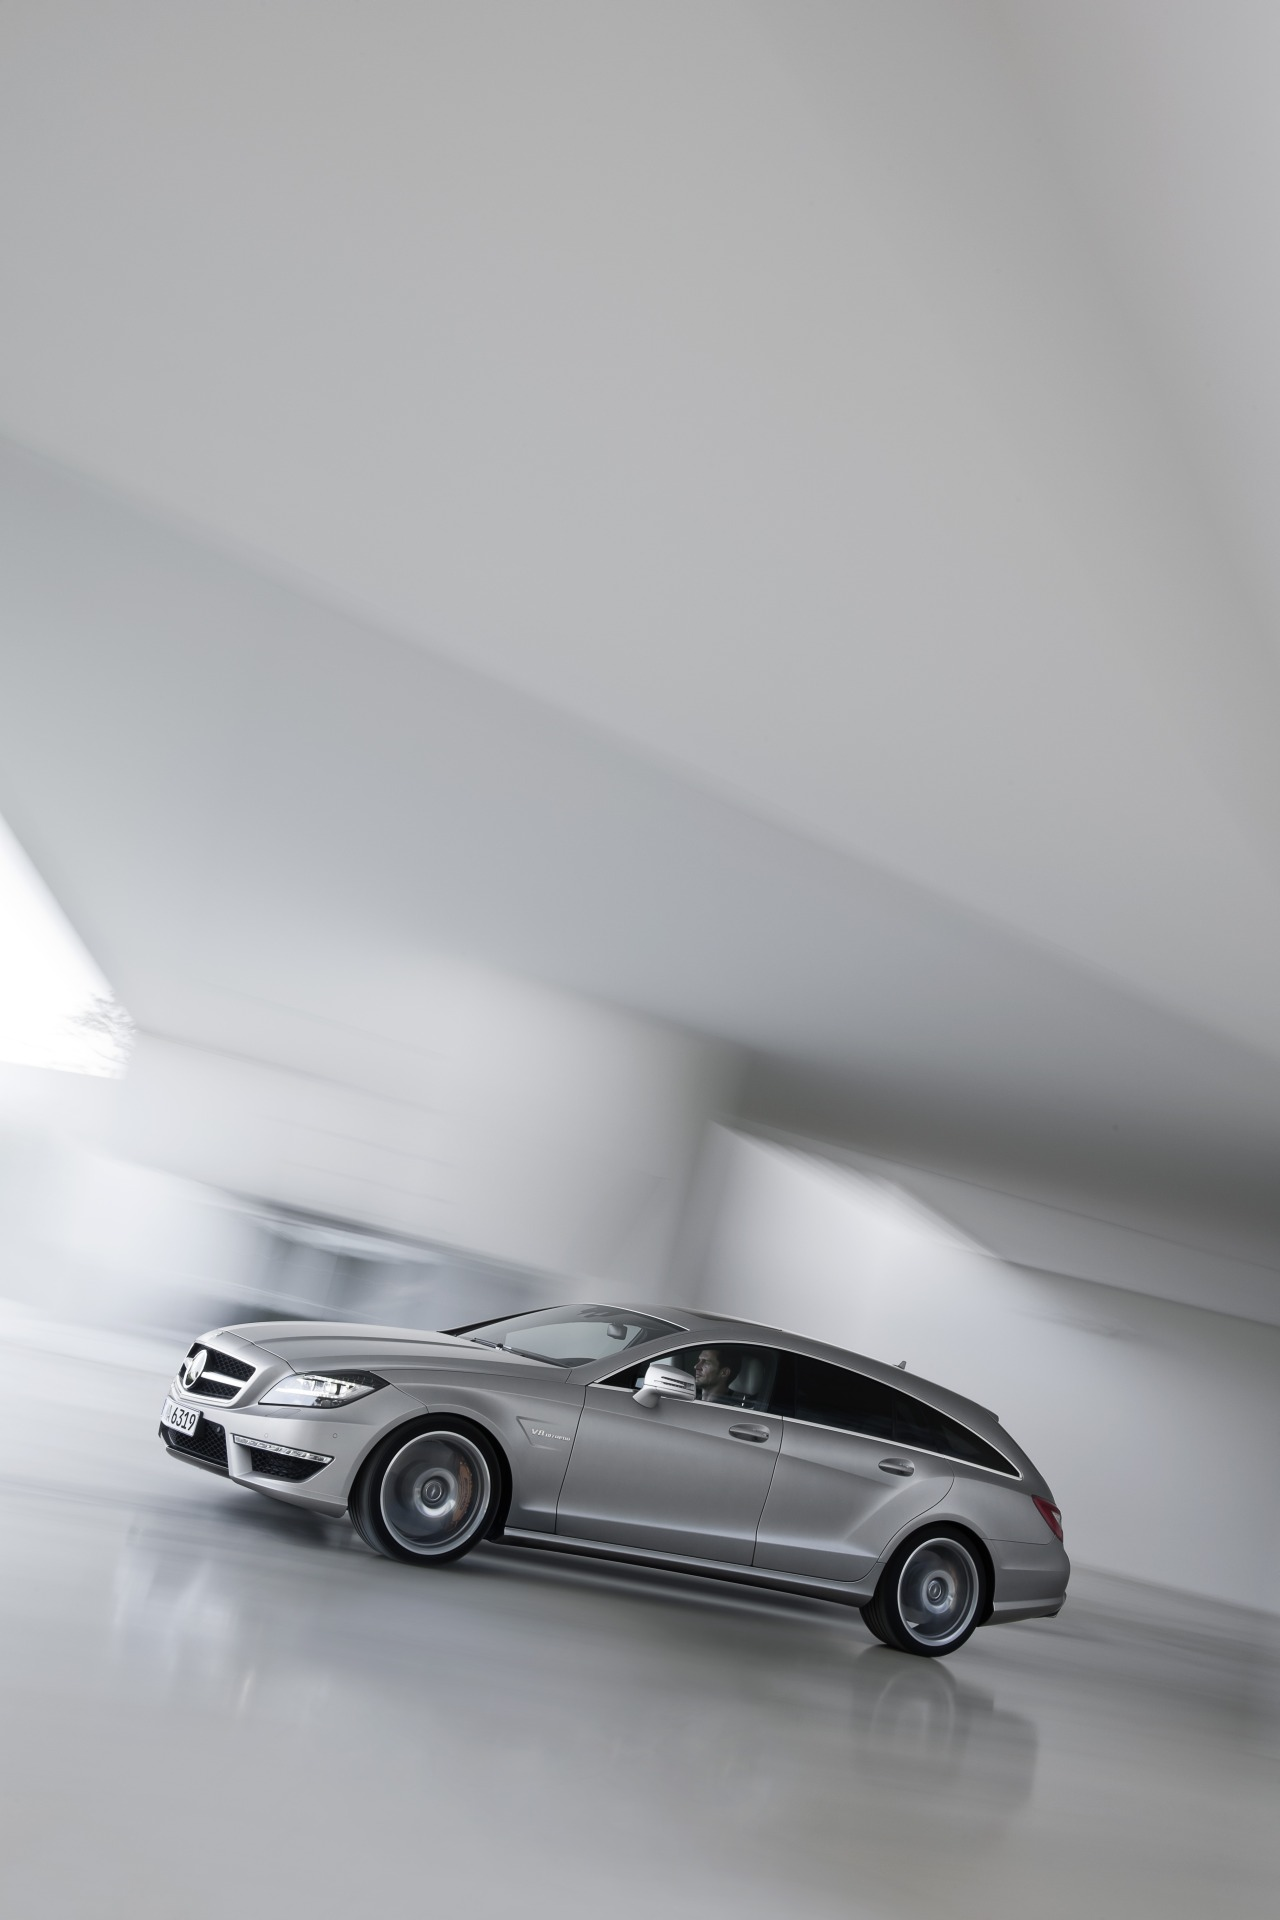 Mercedes_CLS63_AMG_Shooting_Brake_01.jpg